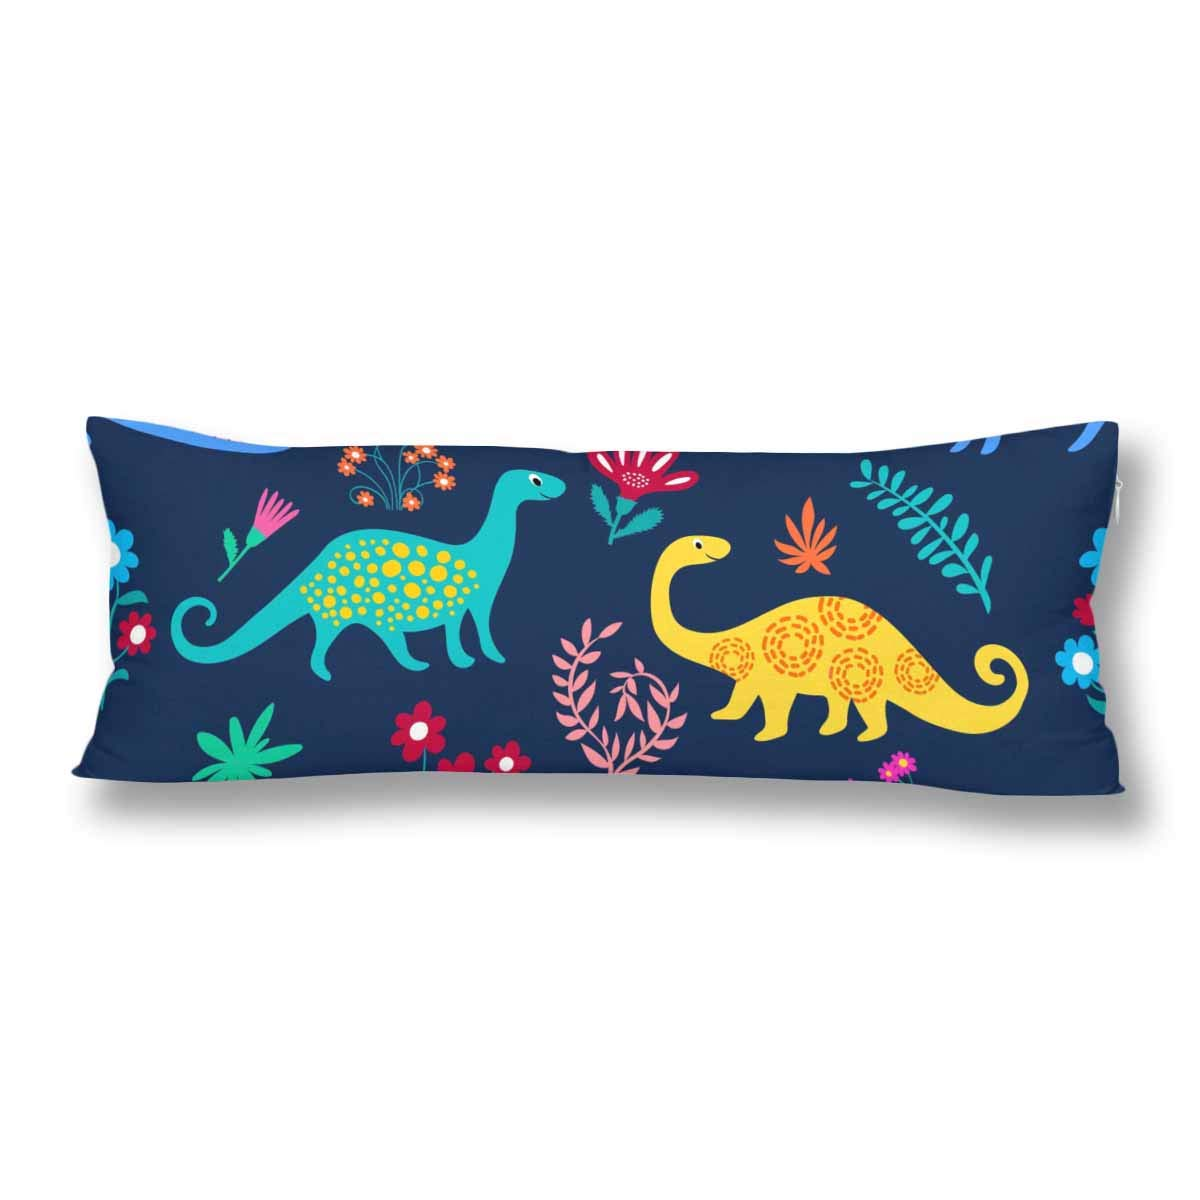 InterestPrint Dinosaurs Cute Kids Pattern Colorful Cartoon Animals Body Pillow Covers Case Protector Rectangle with Zipper 21x60 Twin Sides for Sofa Decorative